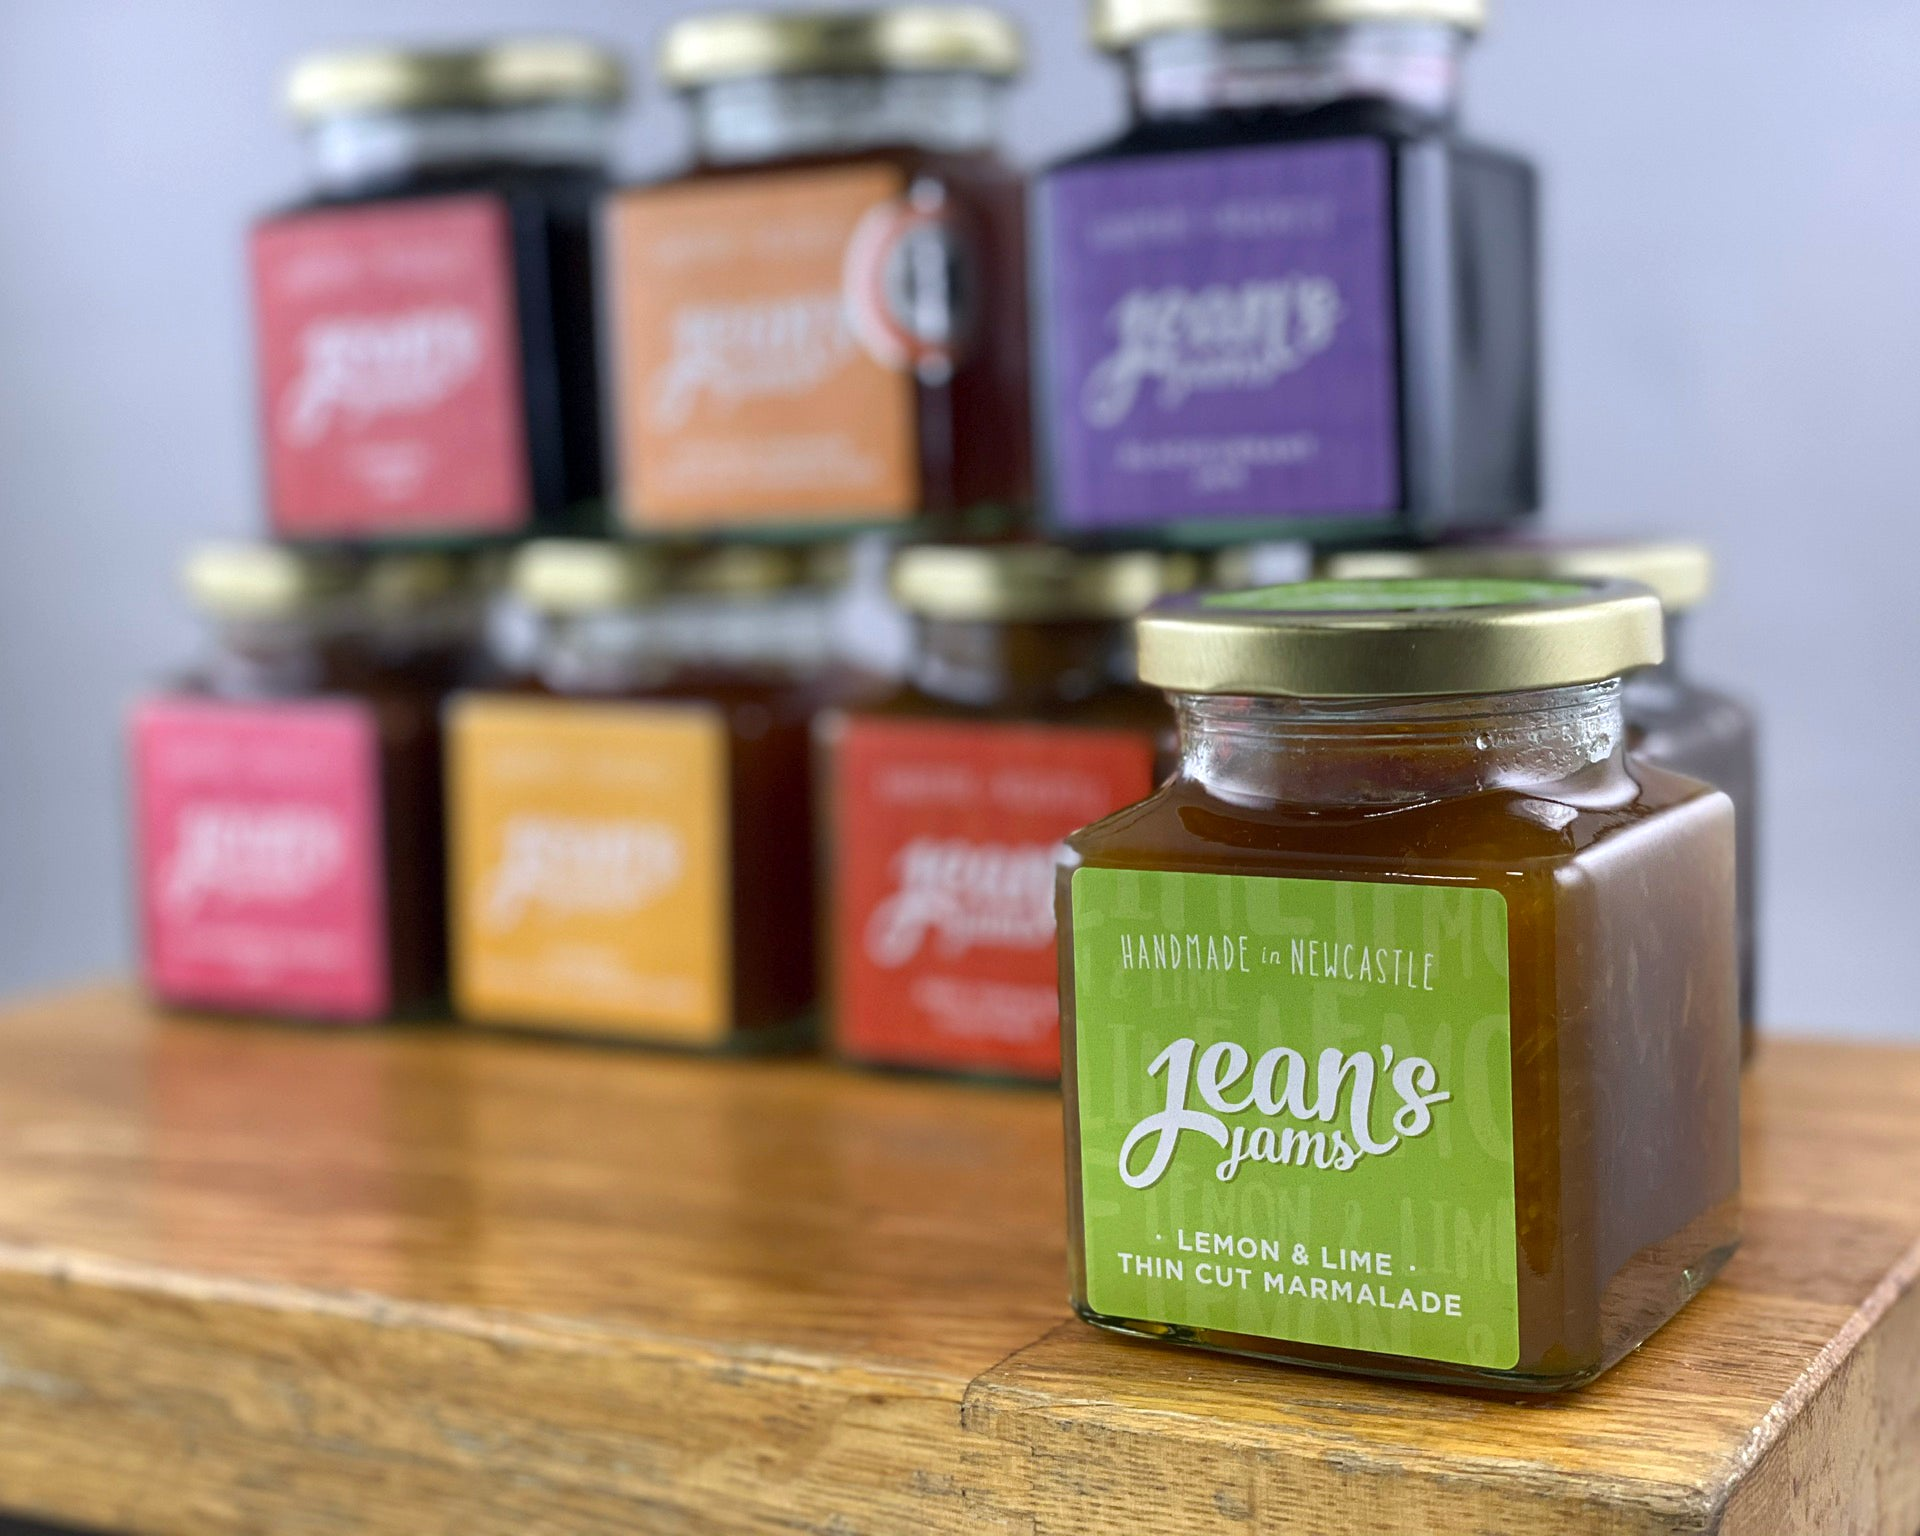 Northern Delicious: Jean's Jams 'Lemon and Lime Marmelade'